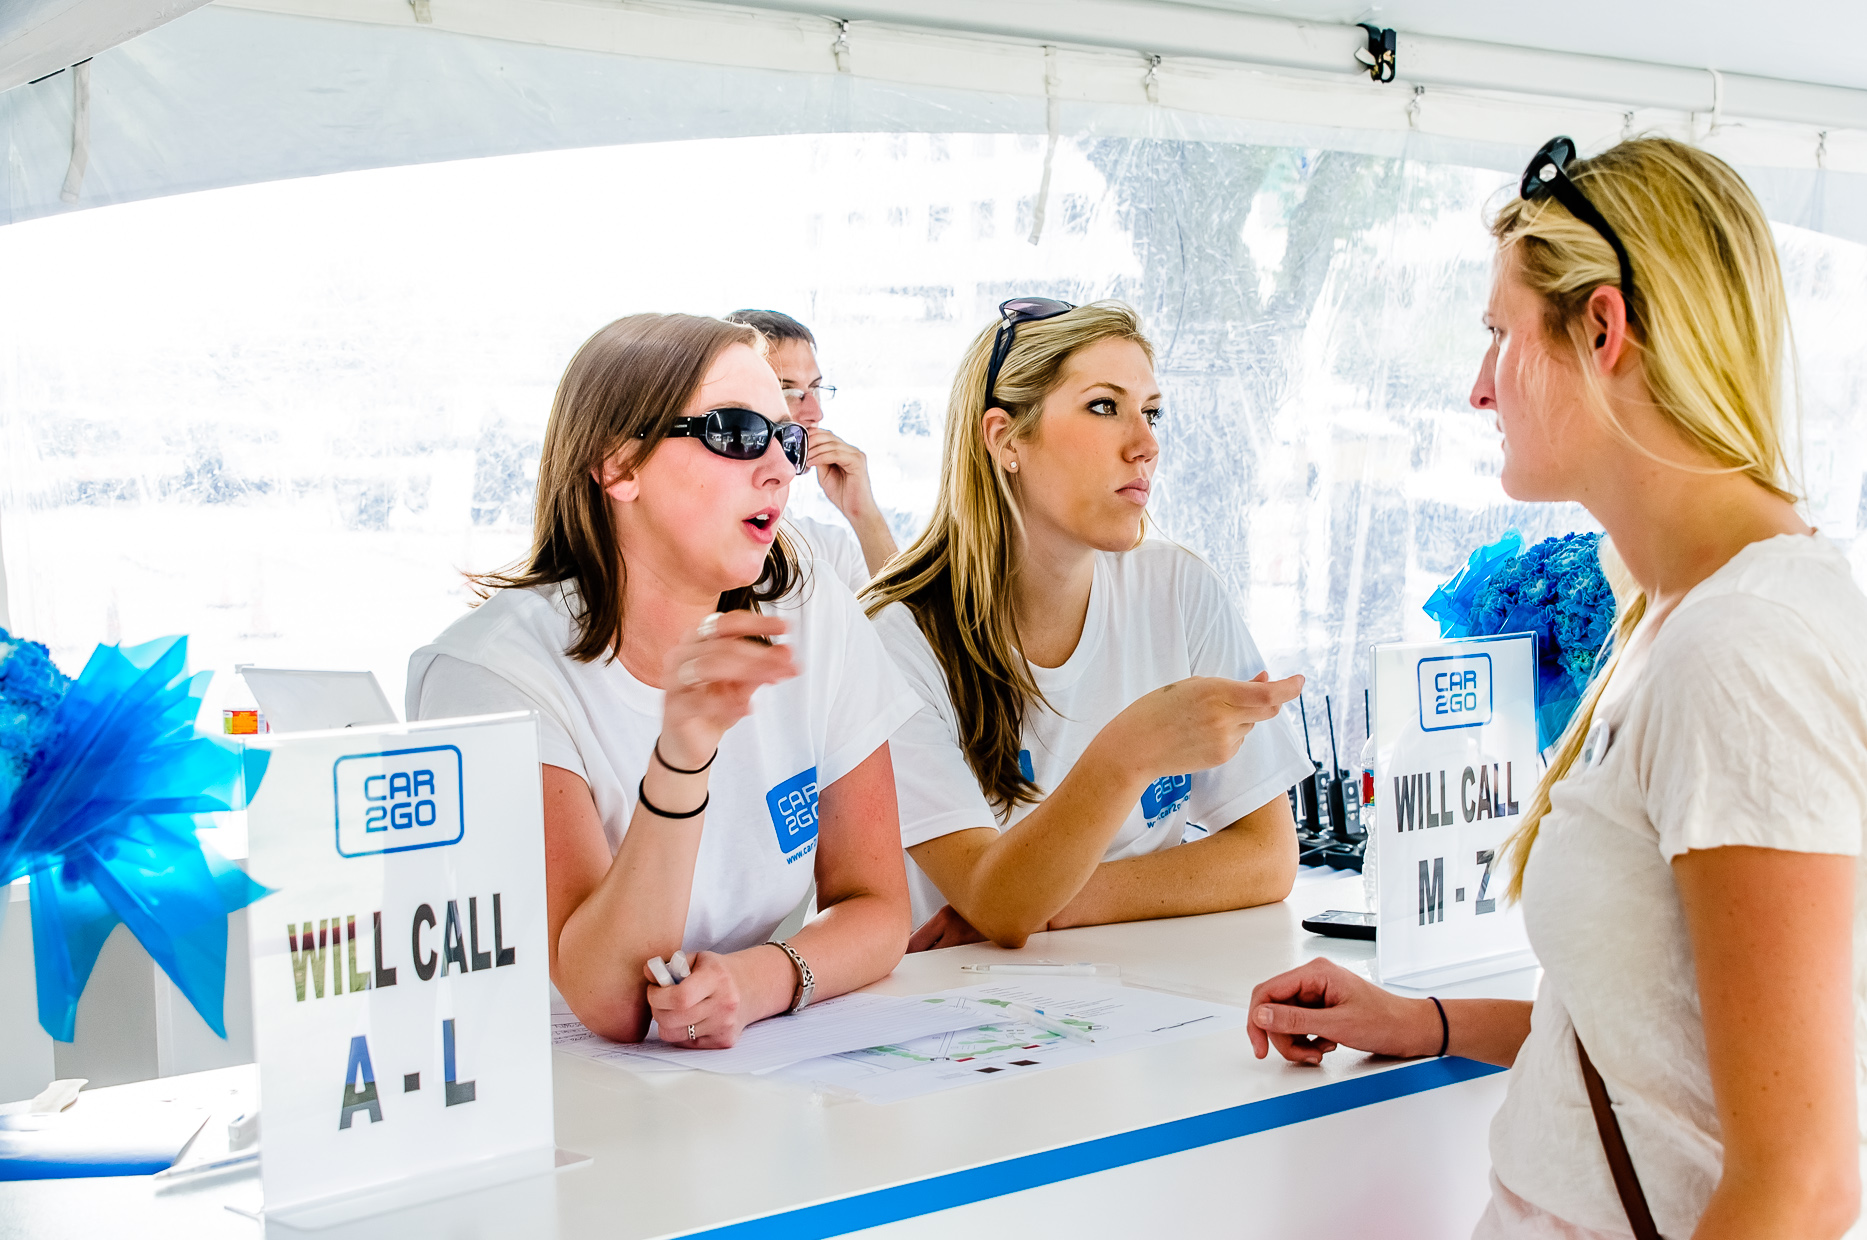 Car2Go-Corporate-Event-Photography-Austin-Texas-Registration.jpg